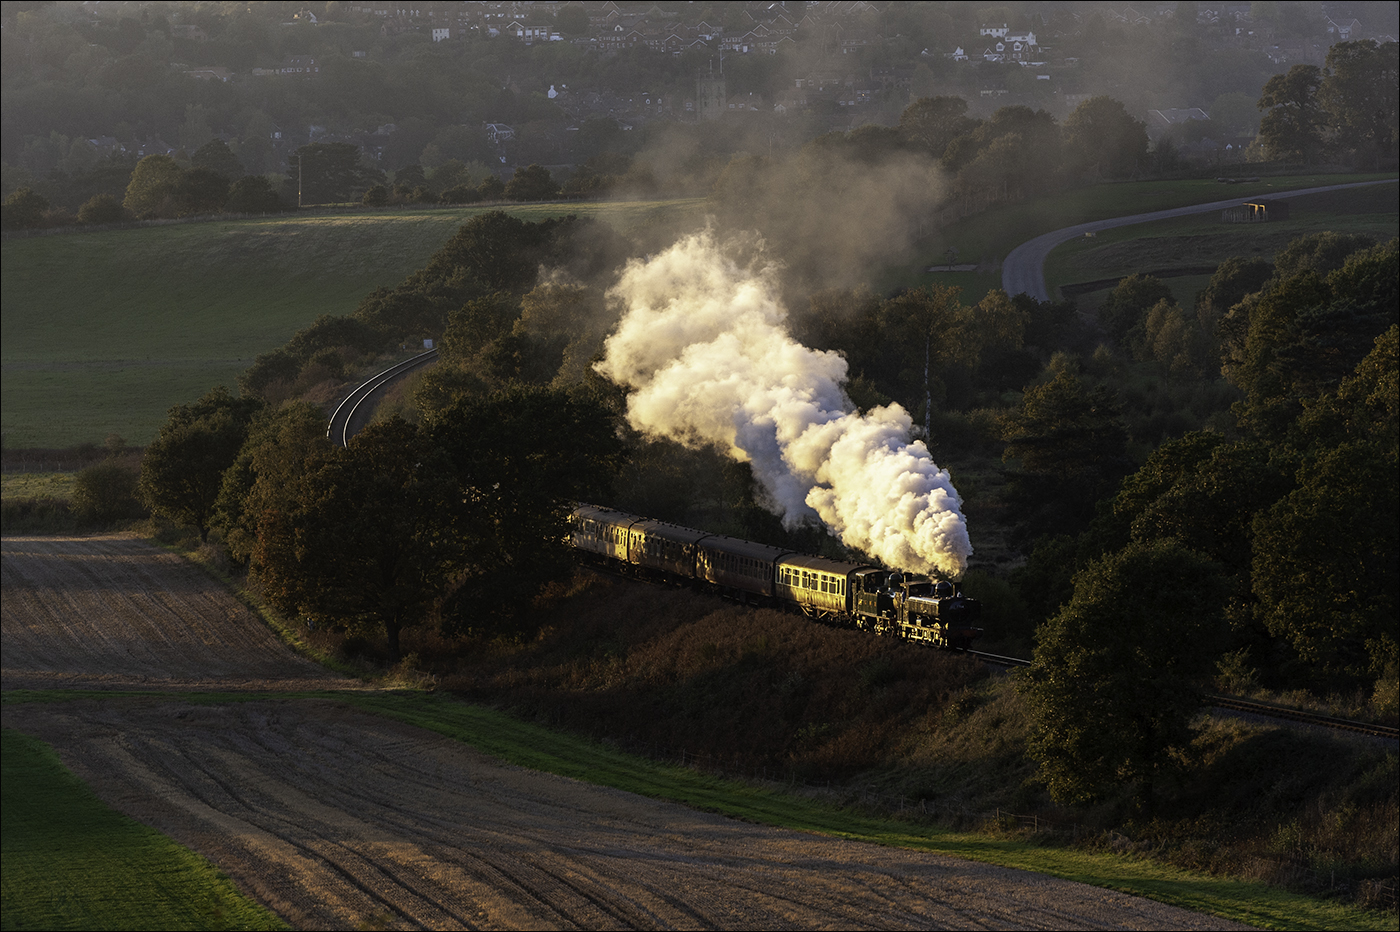 Evening light on the SVR